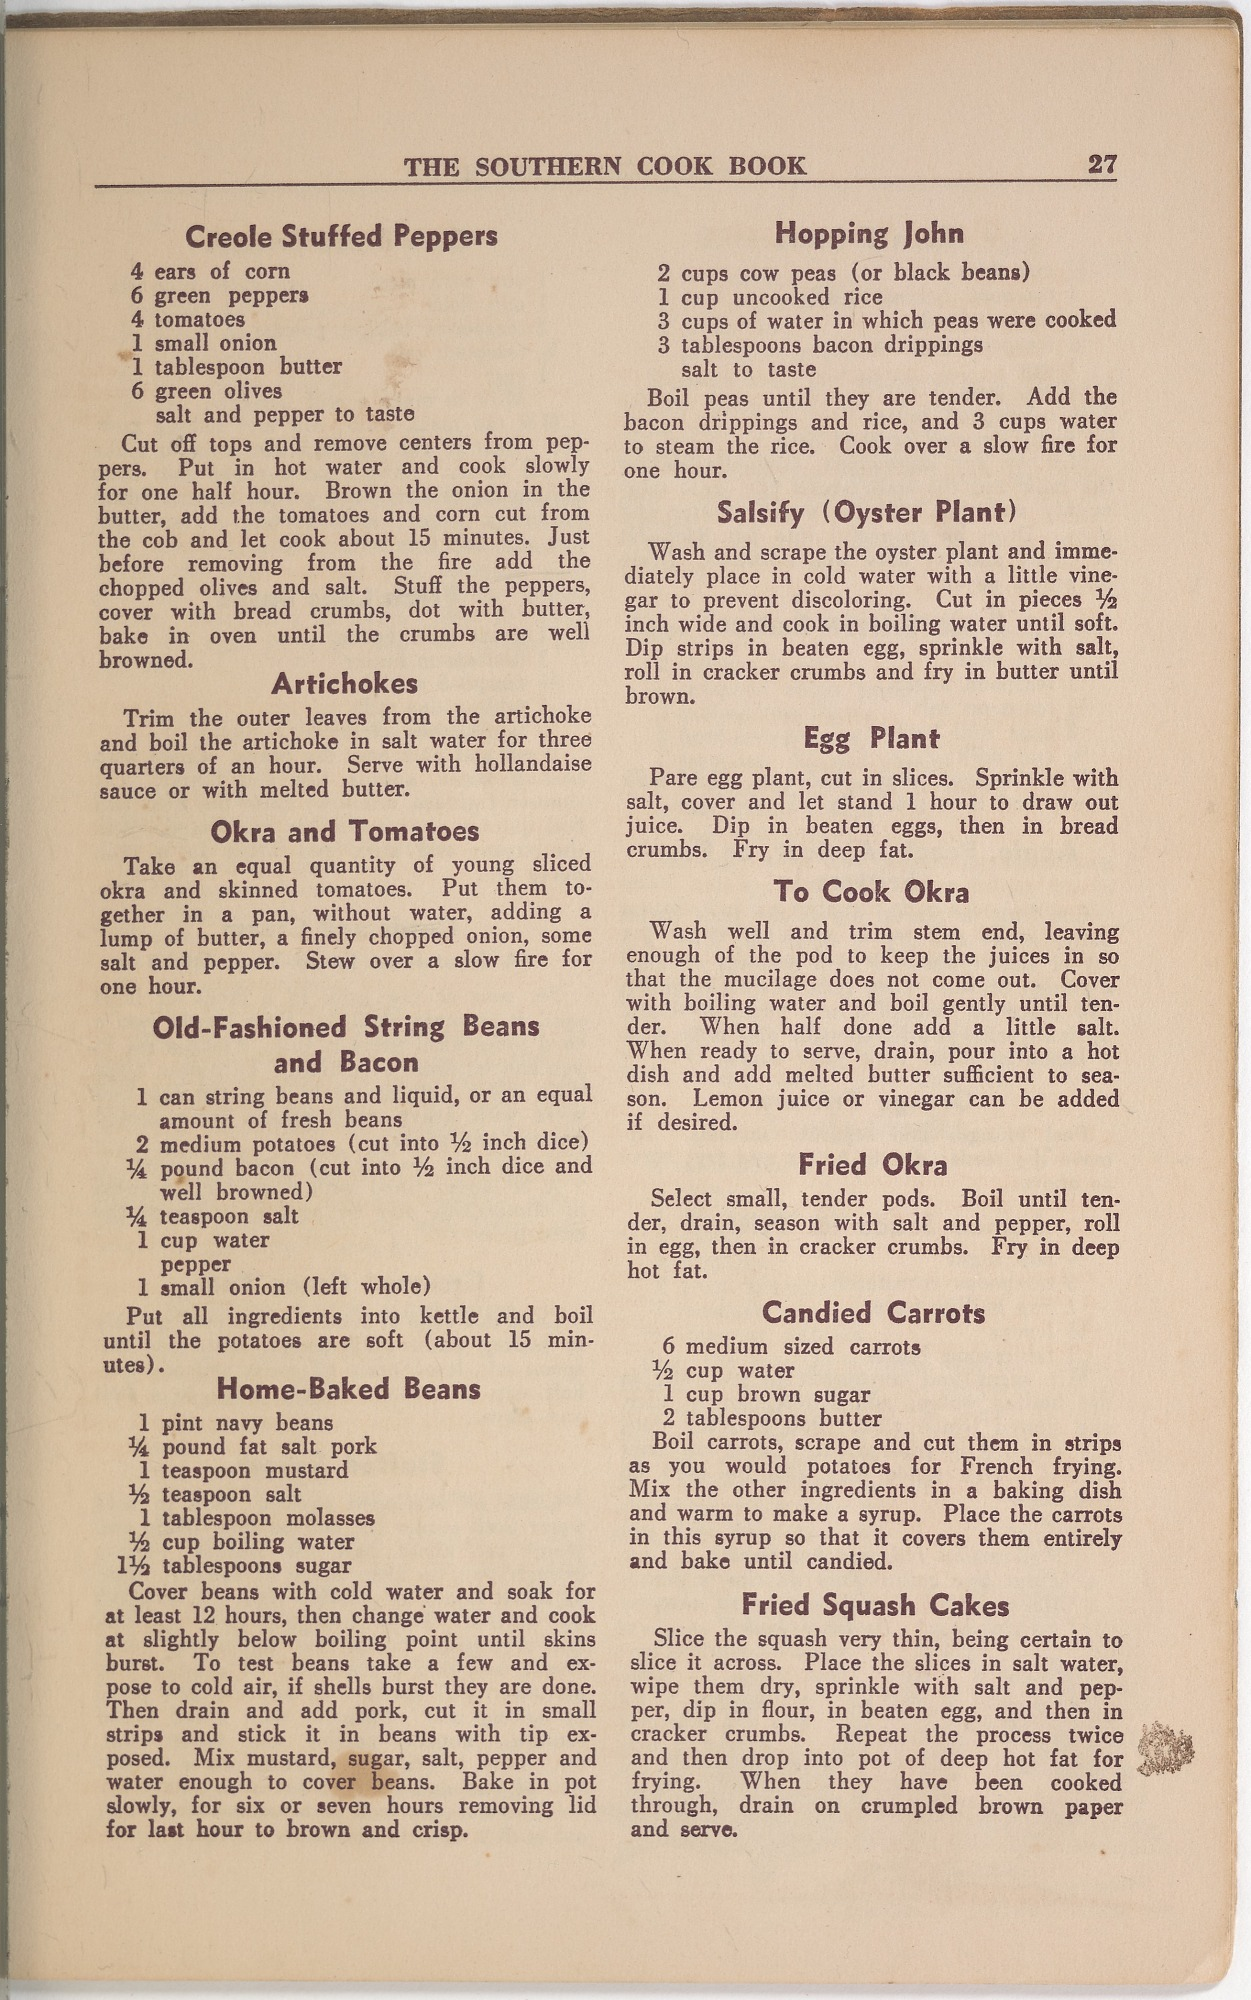 View <I>Southern Cook Book of Fine Old Dixie Recipes</I> digital asset number 29